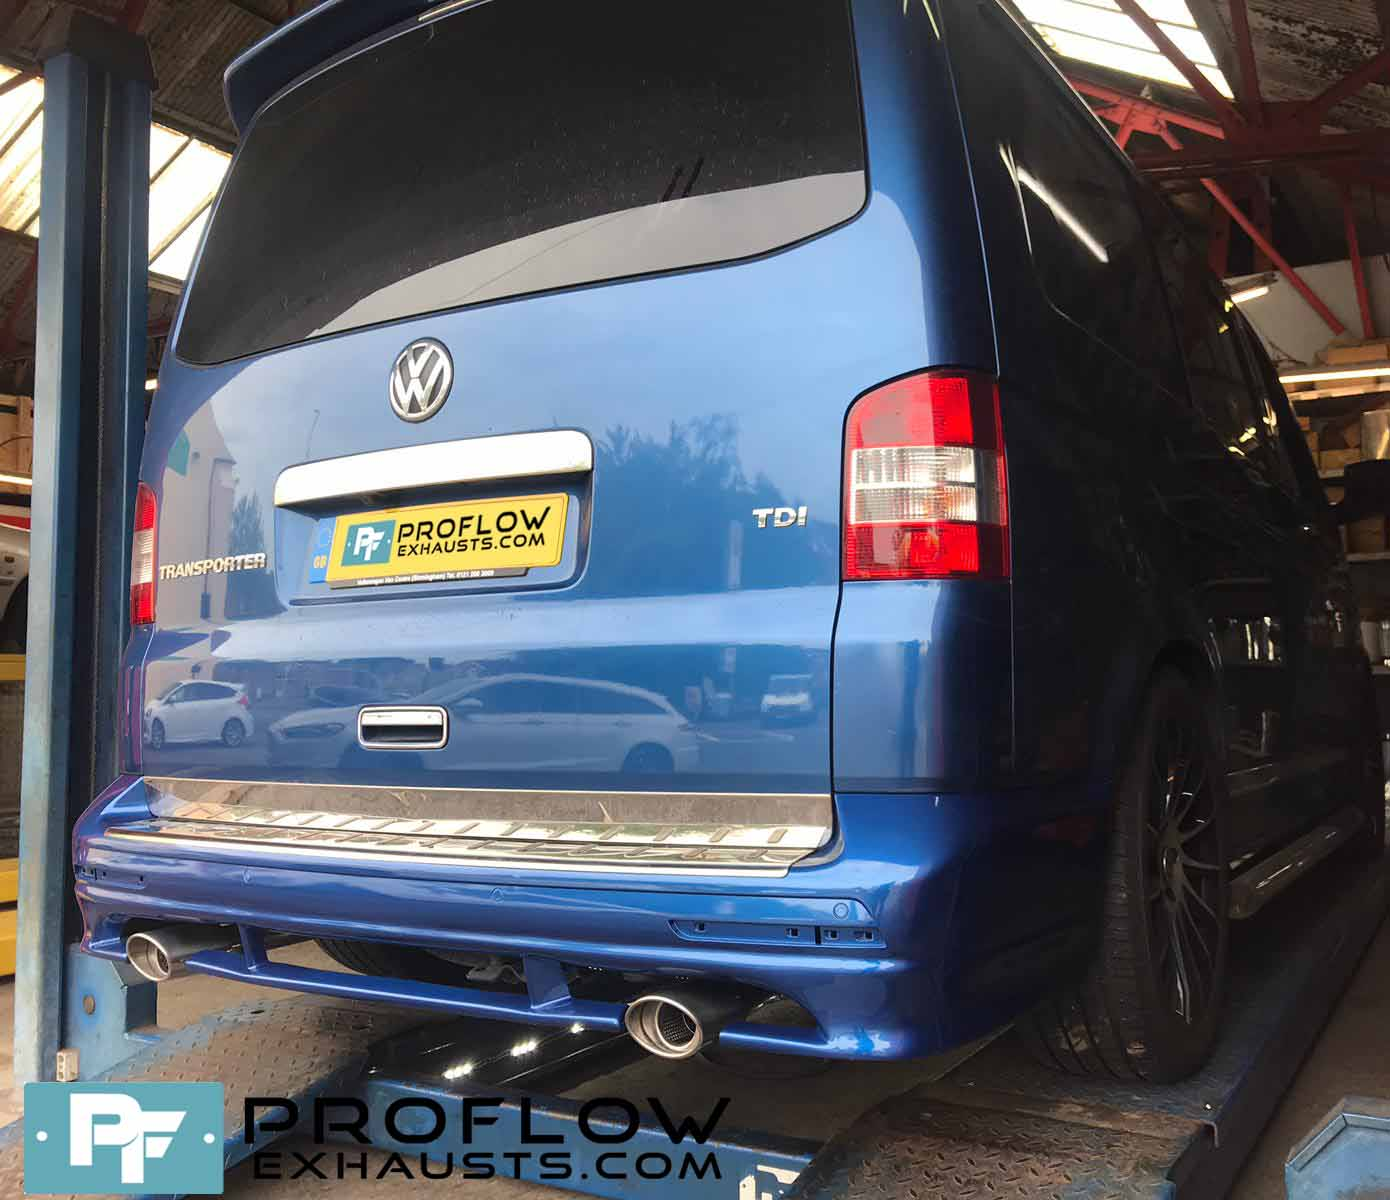 VW Transporter T5 T5.1 Exhaust Proflow Custom Stainless Steel Dual Exit With Dual Exit (4)